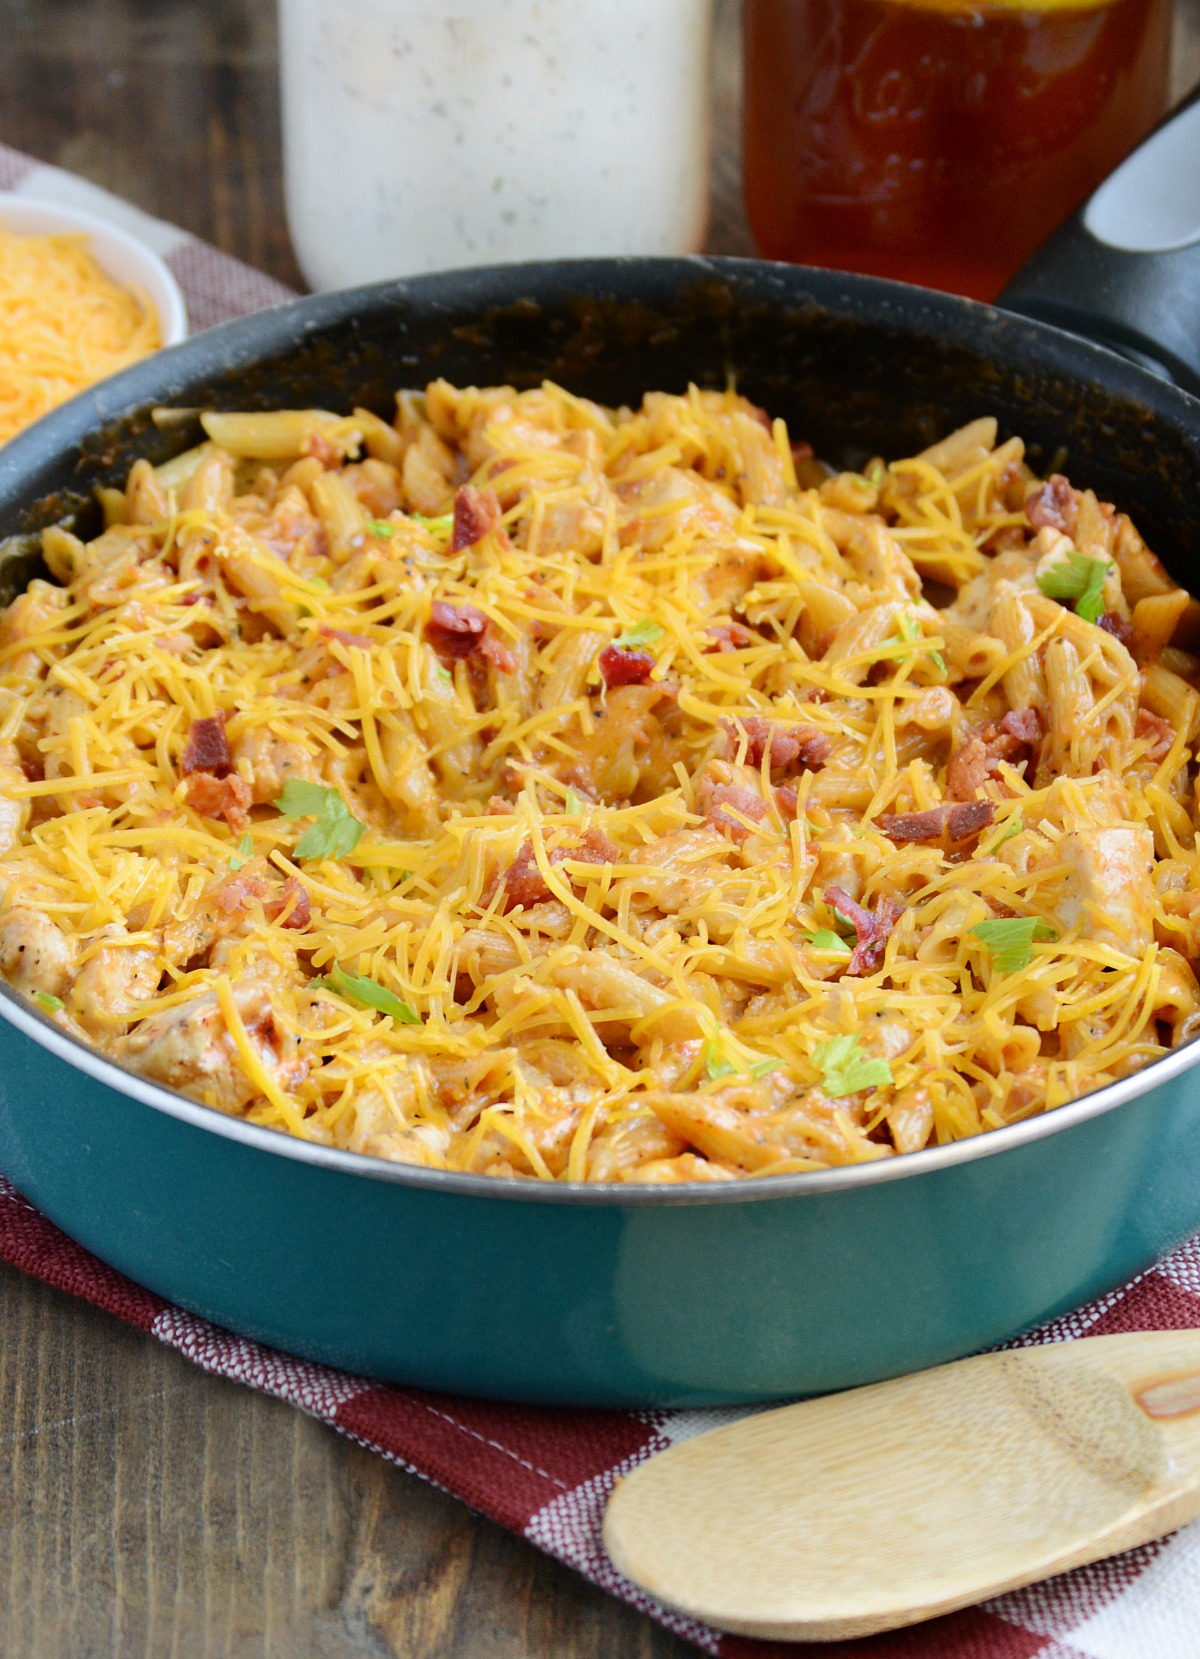 30-minute BBQ Bacon Ranch Chicken Pasta has all the flavors you love in an easy, one-pot dinner recipe!